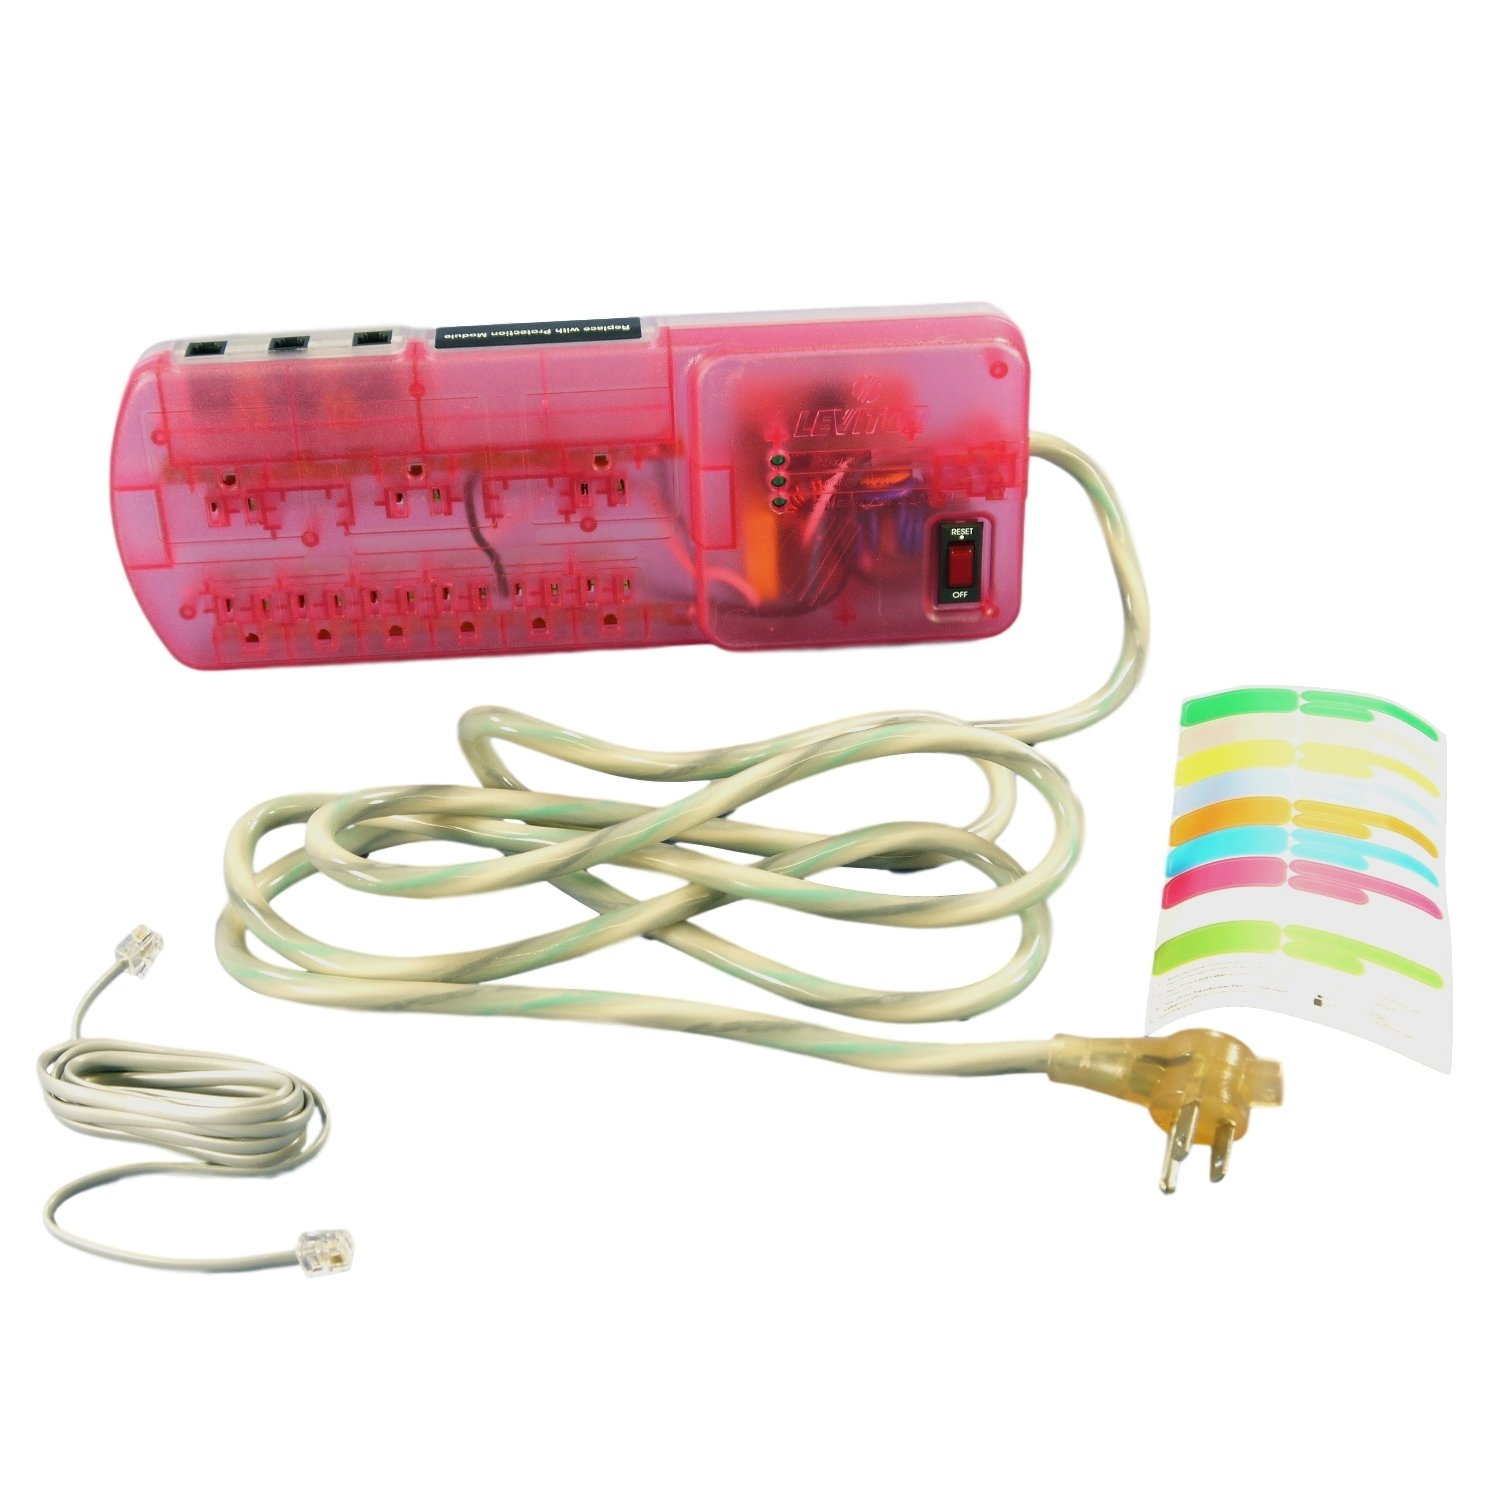 Leviton Pink MODULAR Surge Protector Power Strip With Phone Module 15A 5950-STS